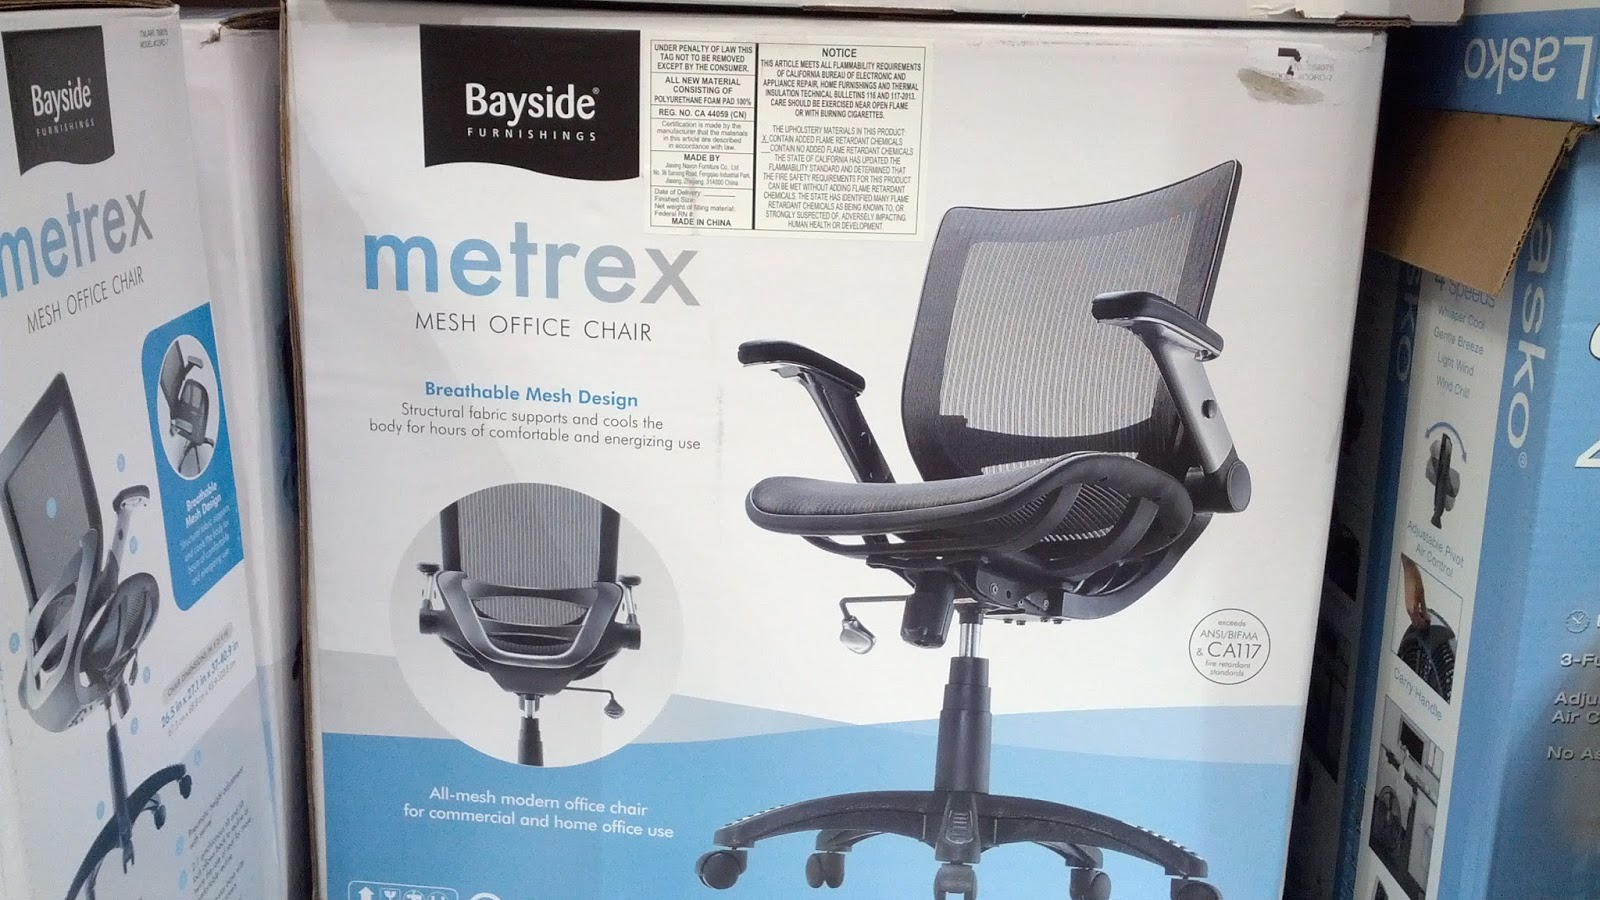 bayside furnishings metrex mesh office chair costco weekender